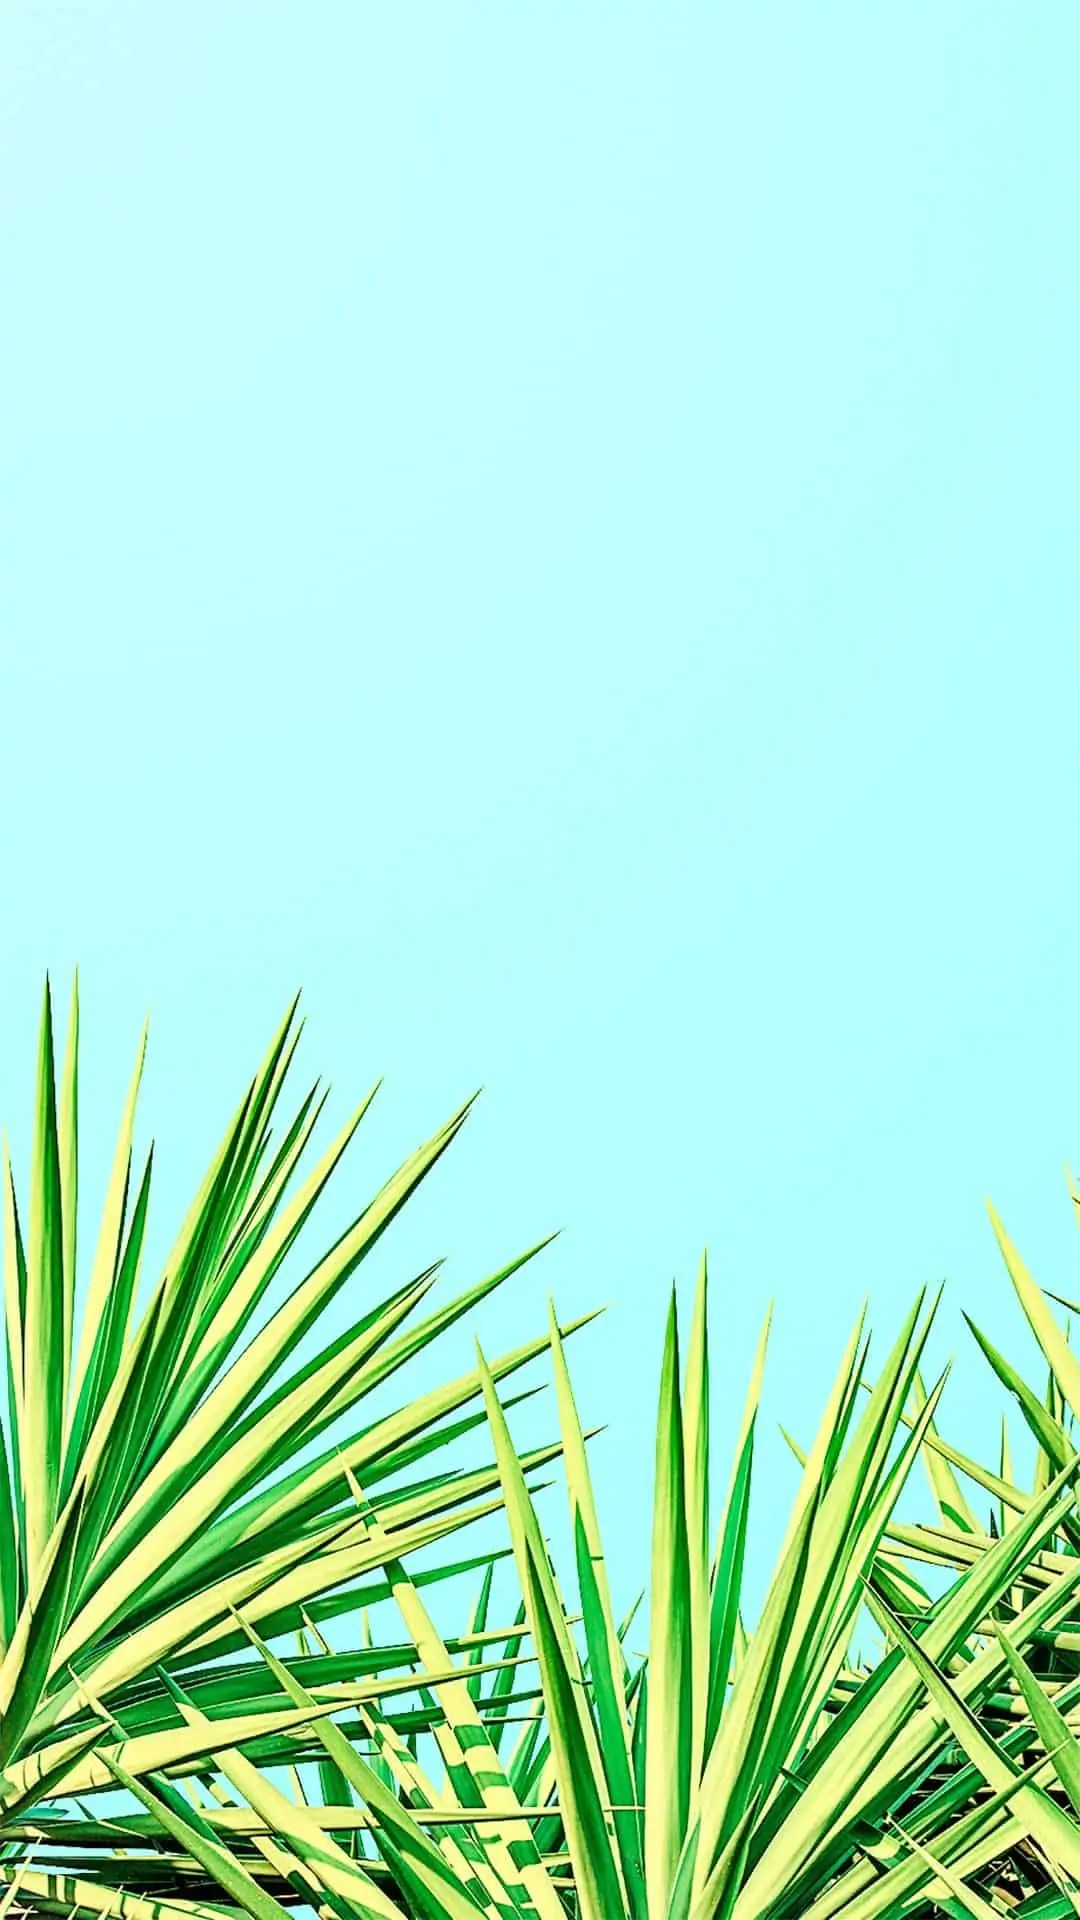 Summer wallpaper for iPhone